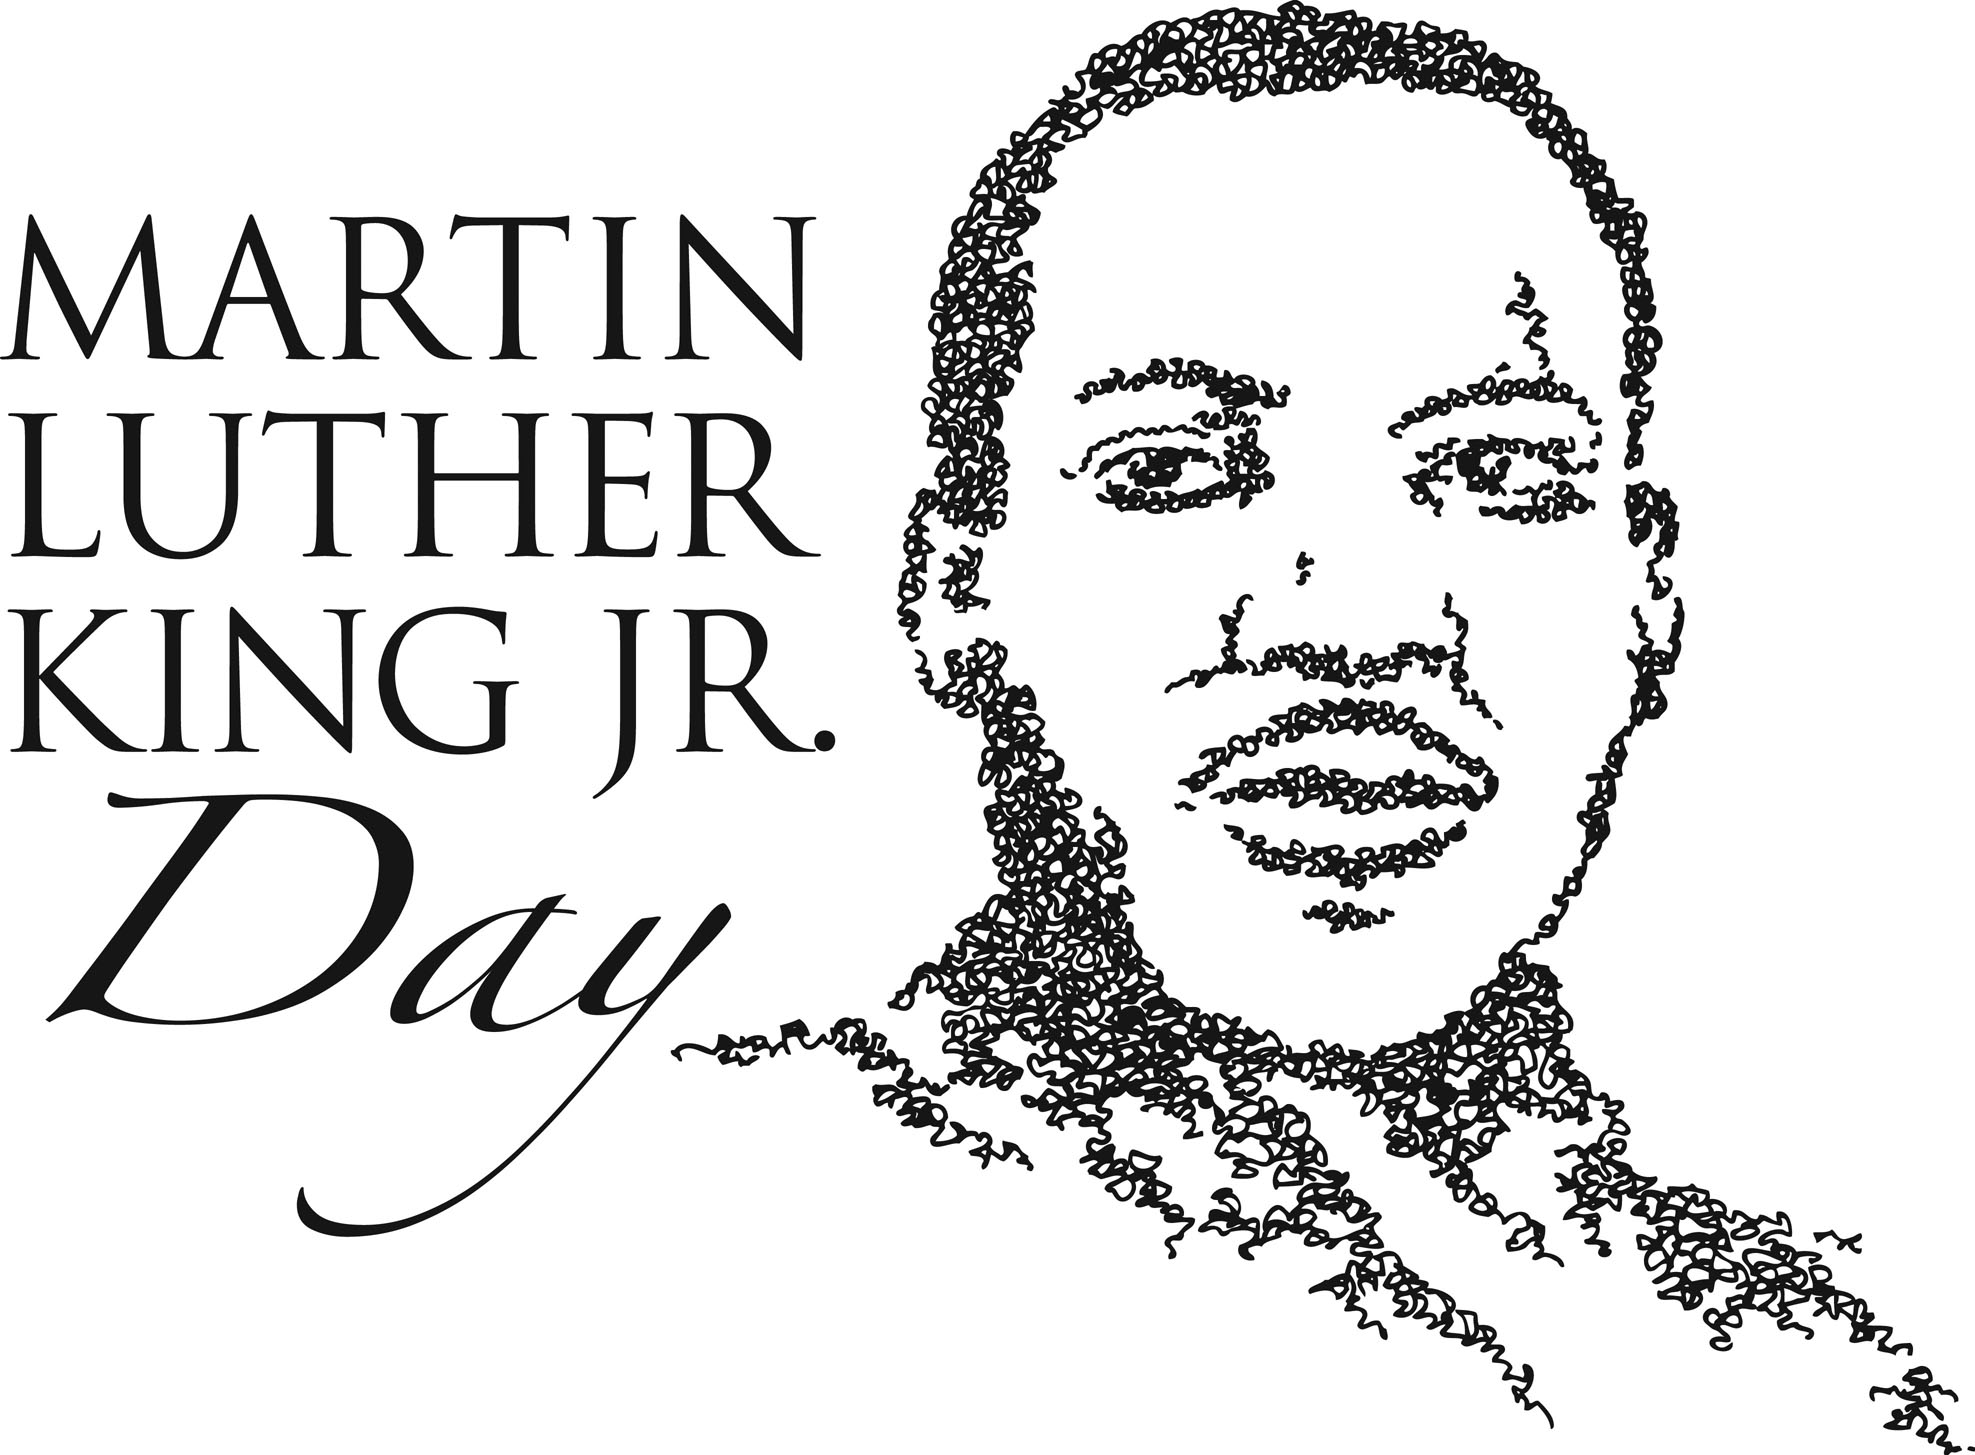 Closed For Martin Luther King Day